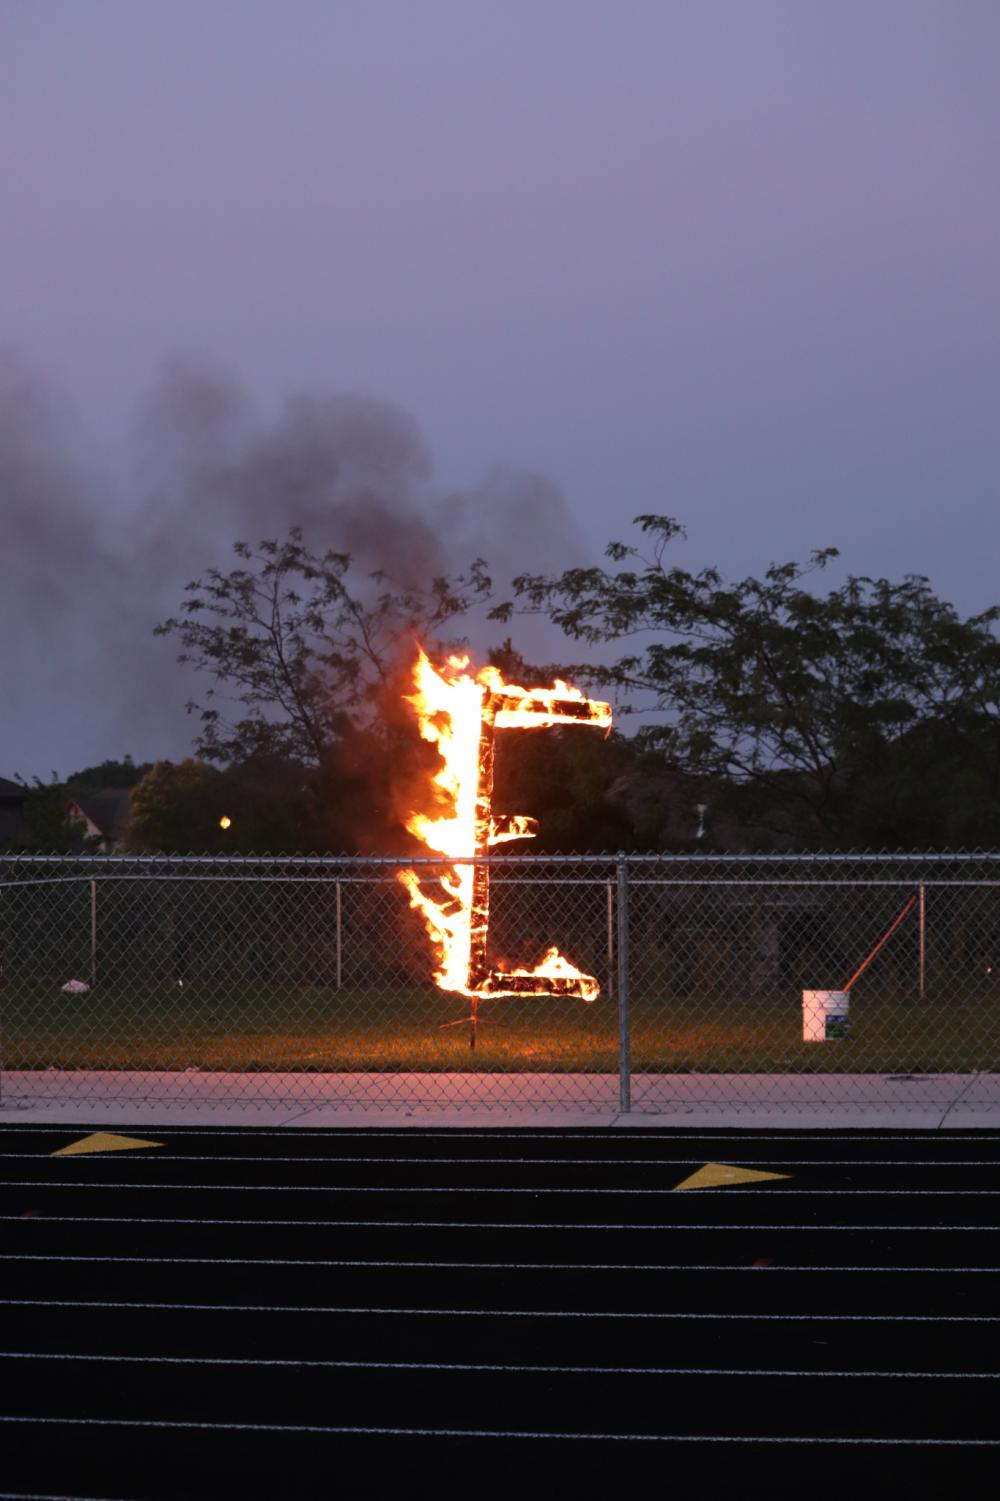 The E was burnt behind the fence this year.